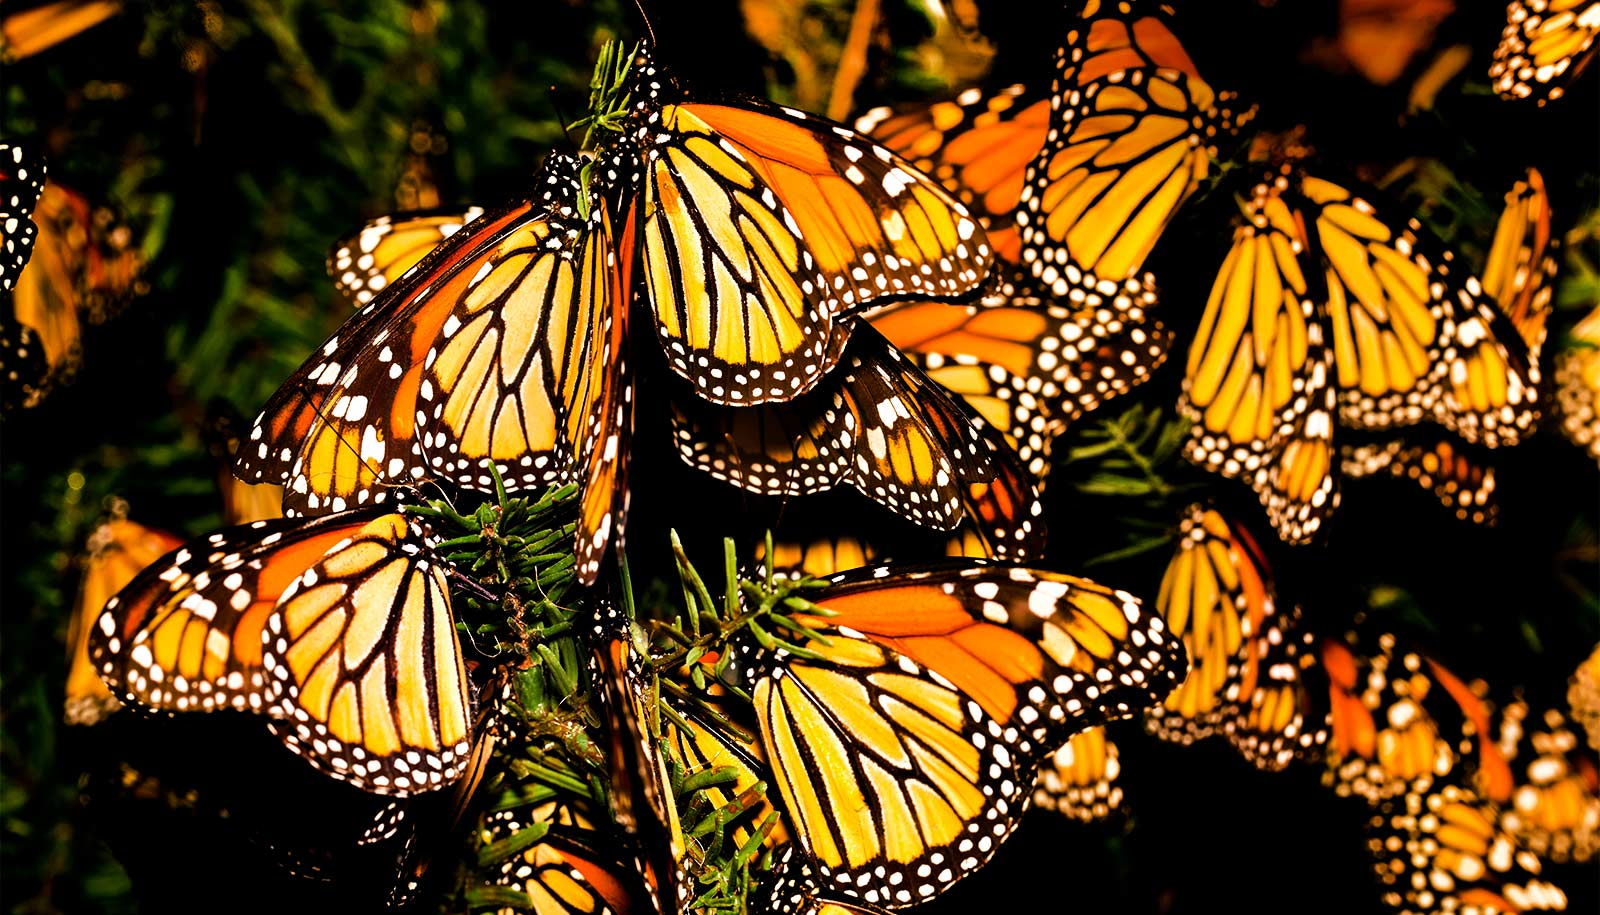 Fall migration is key to monarch survival